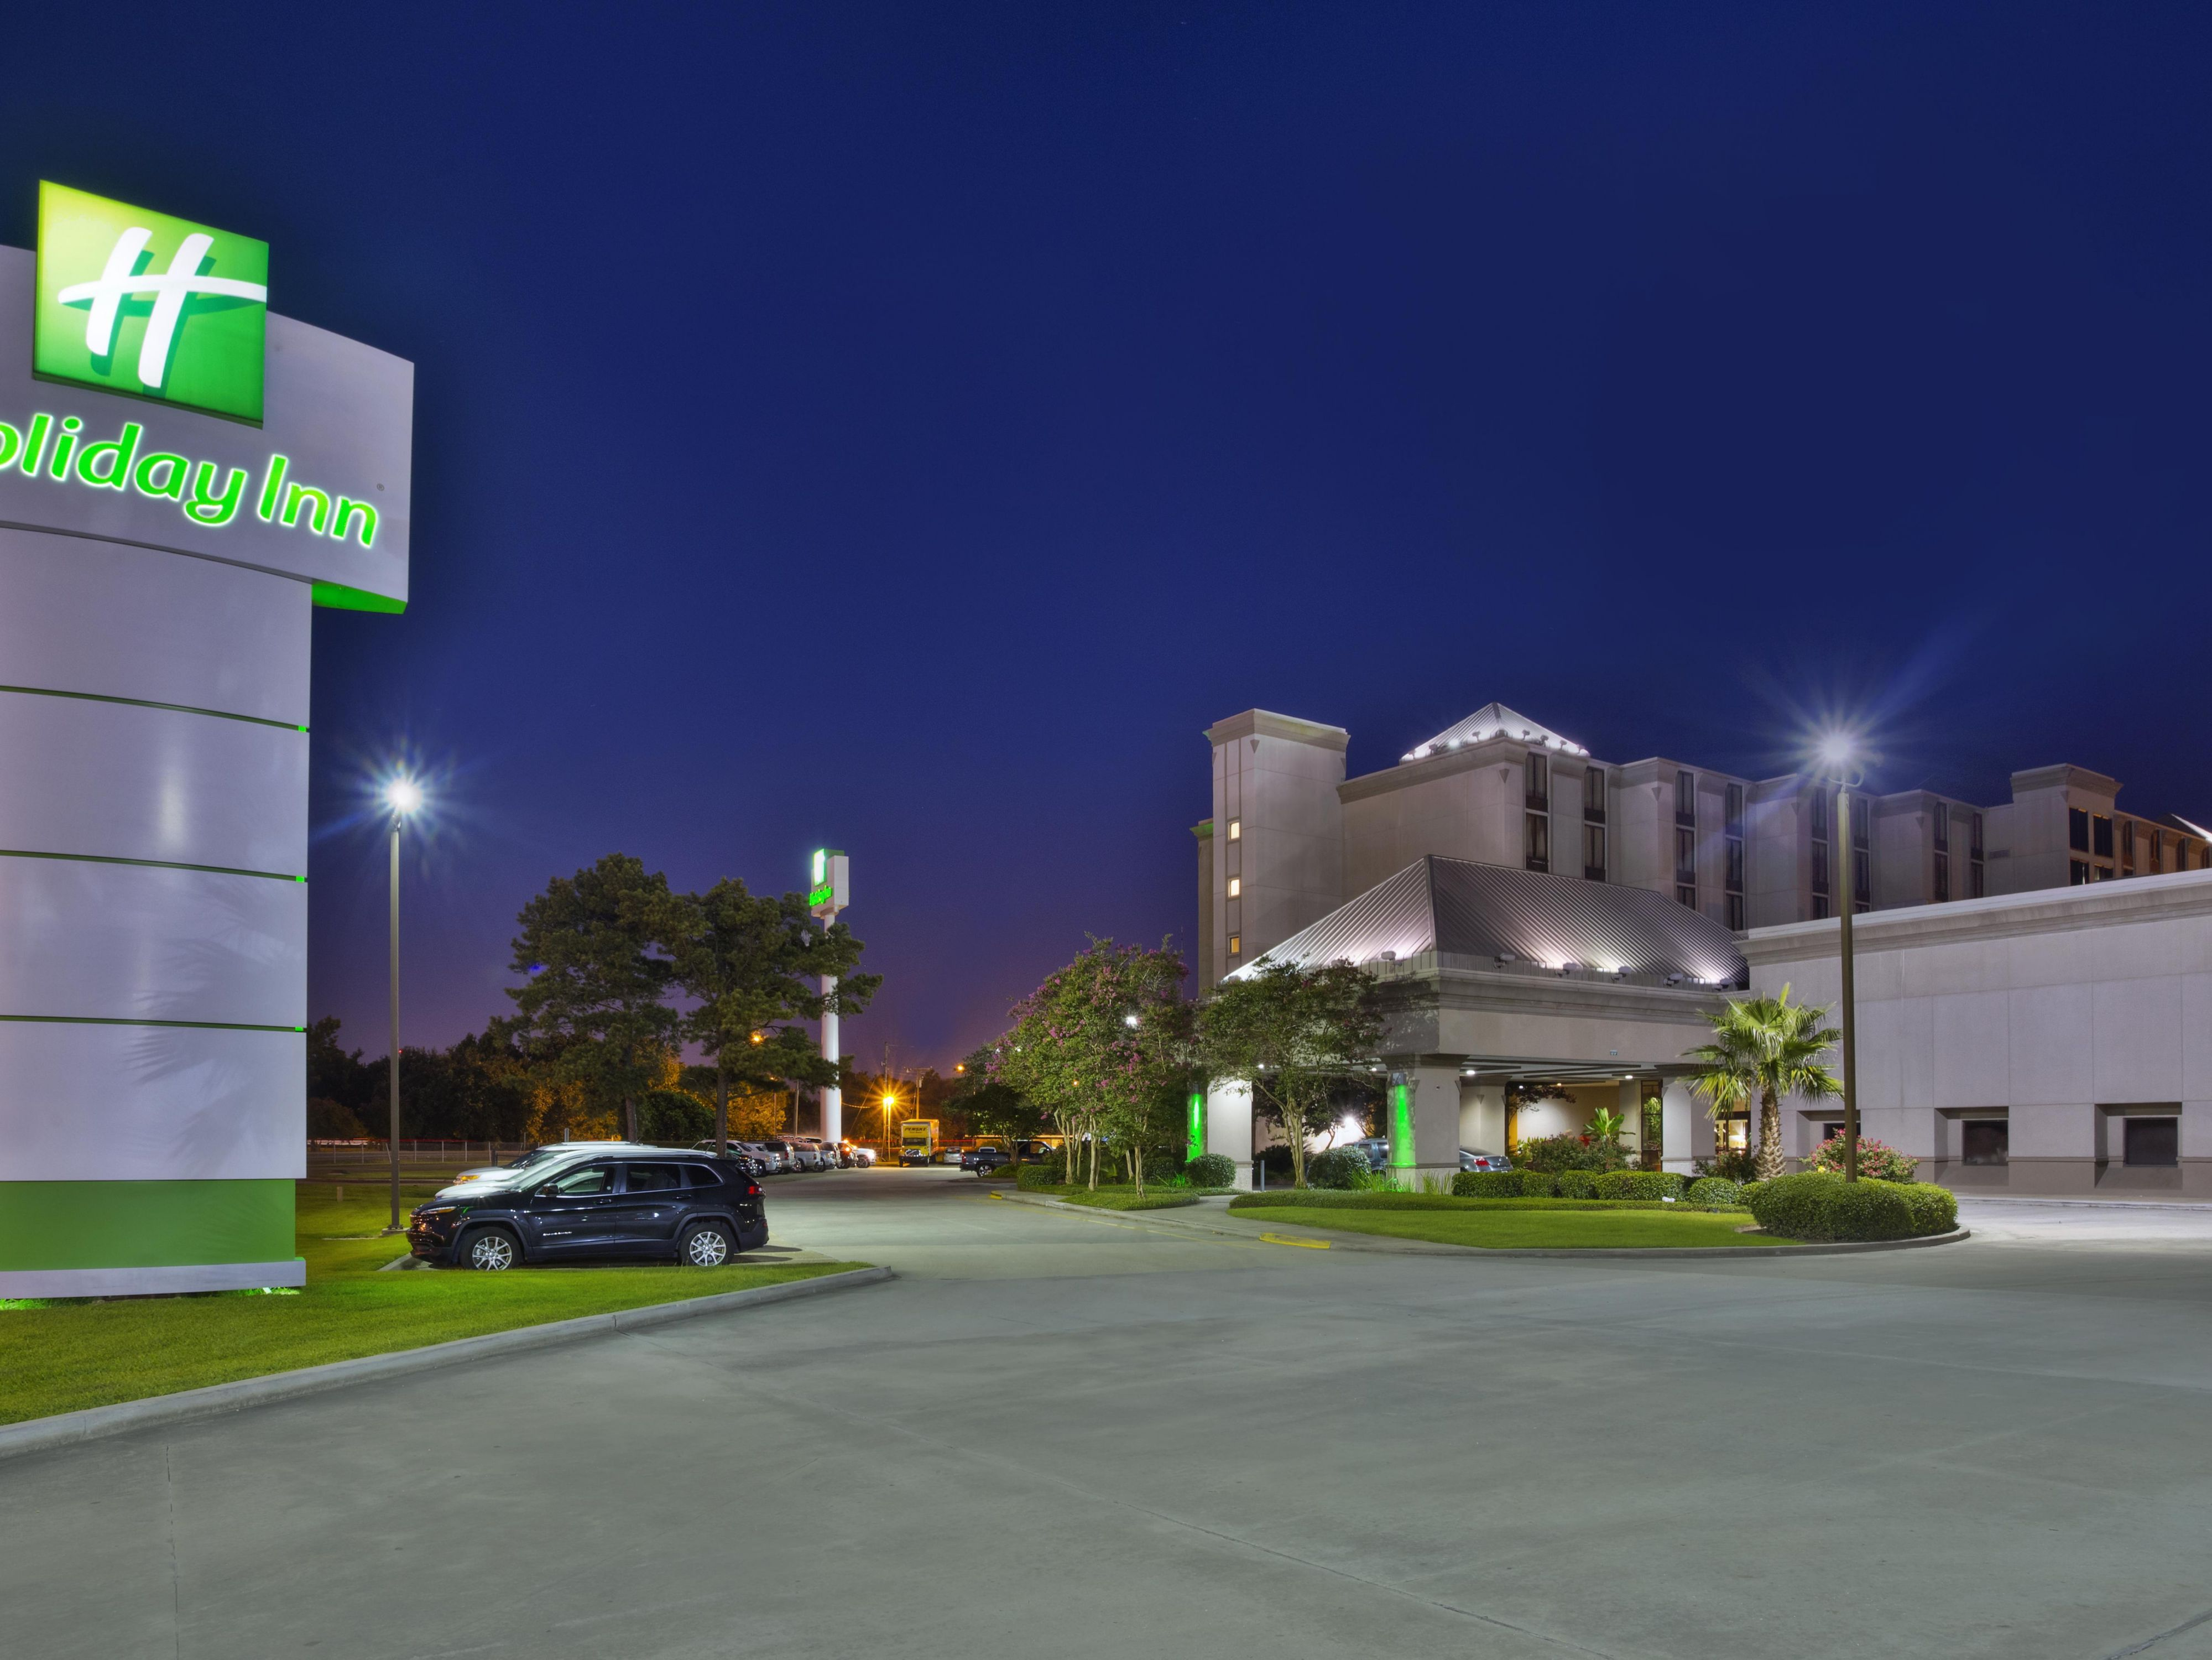 Hotels With Meeting Rooms In Baton Rouge